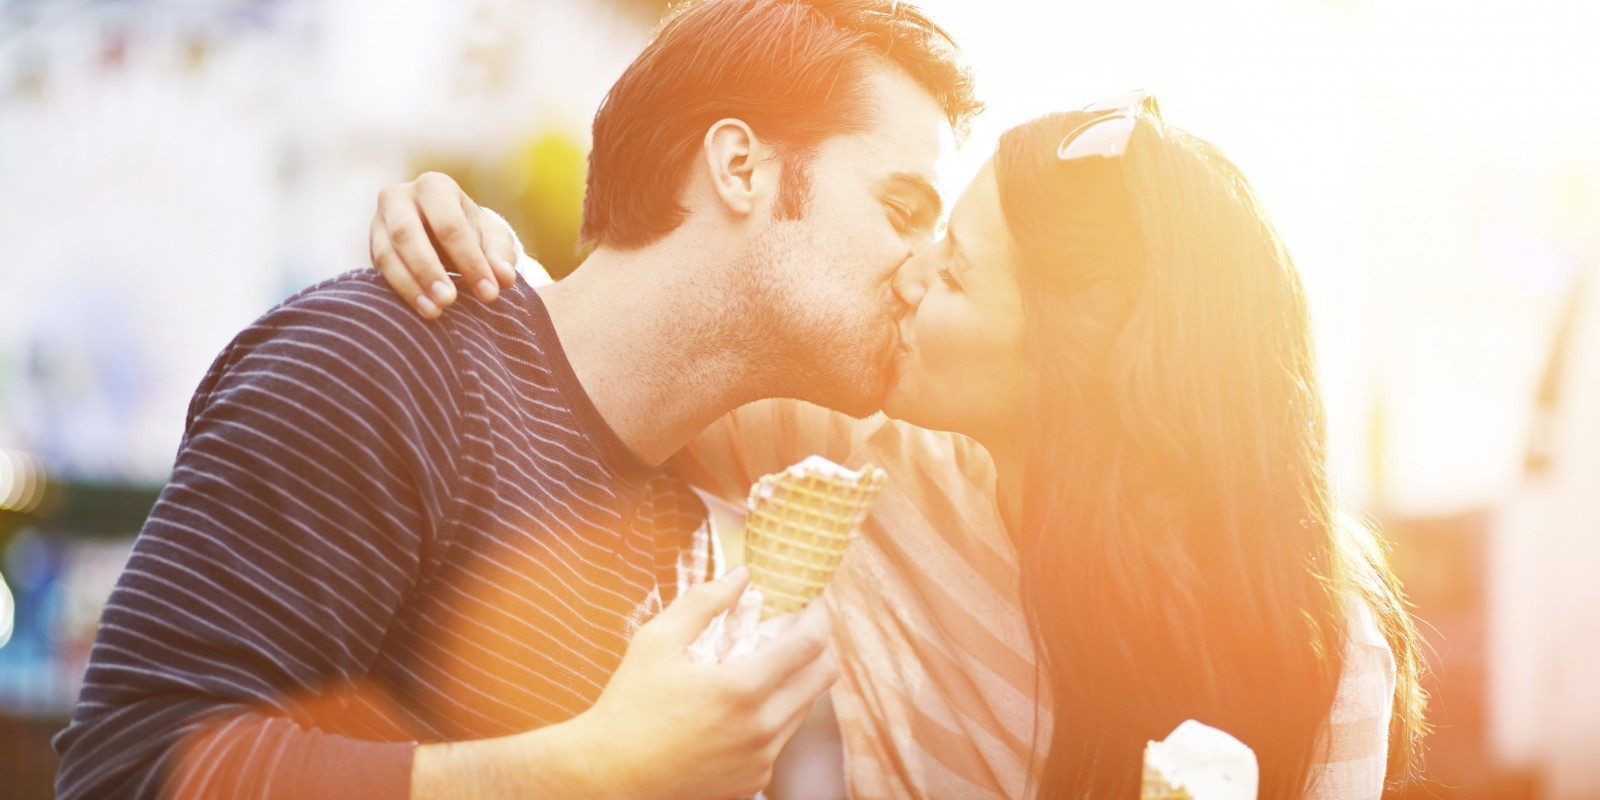 I Want To Kiss You Quotes - Romantic Couple Kiss